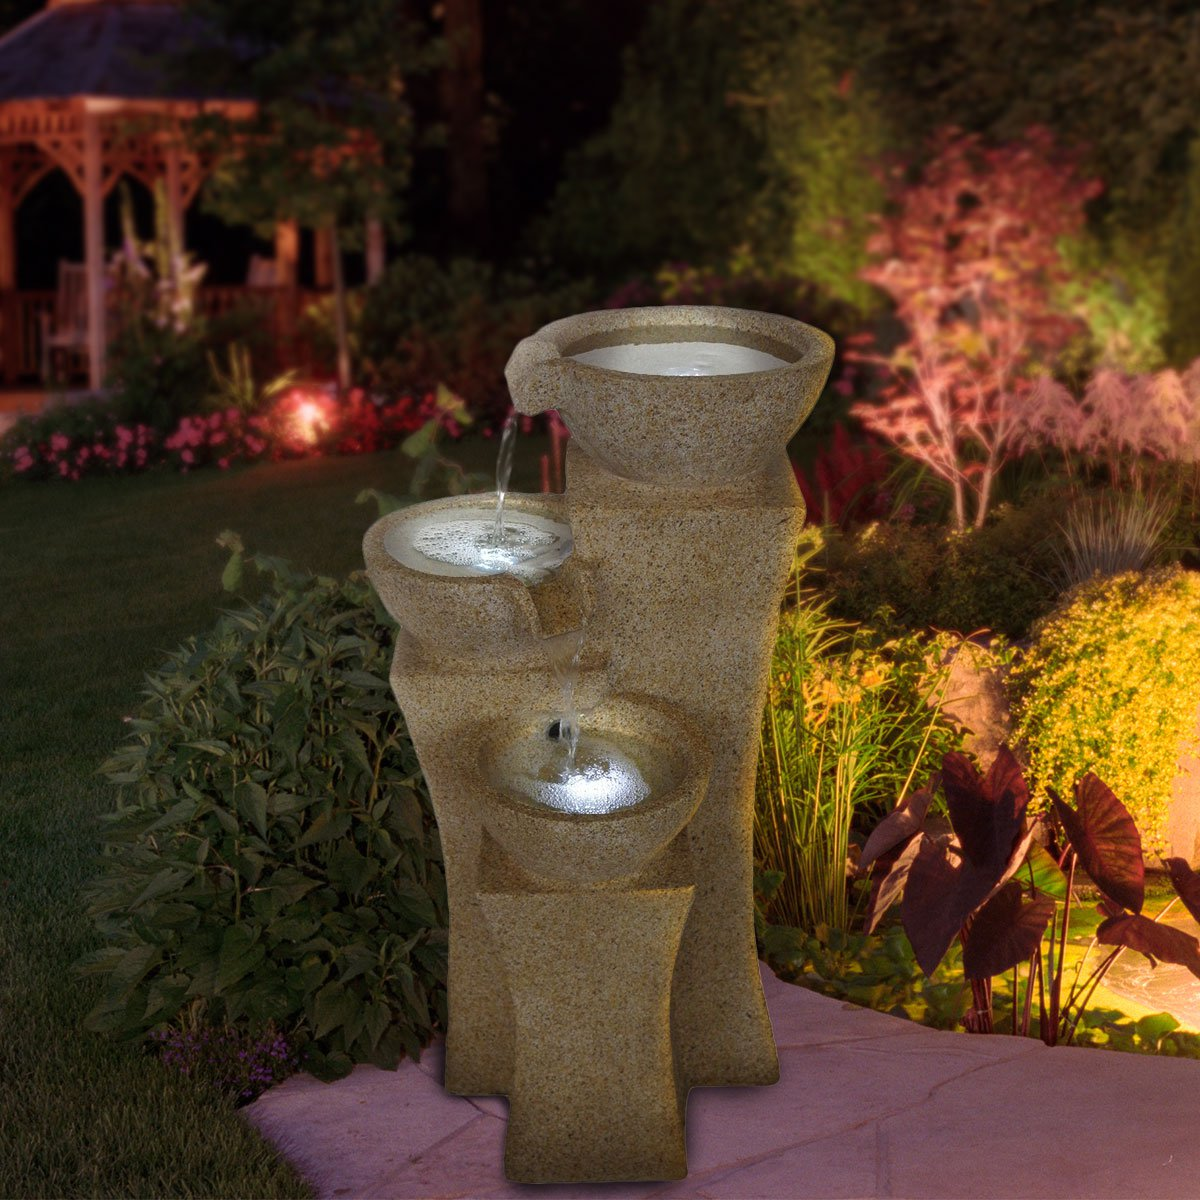 Amazing Pure Garden Cascade Bowls Outdoor Fountain With LED Lights